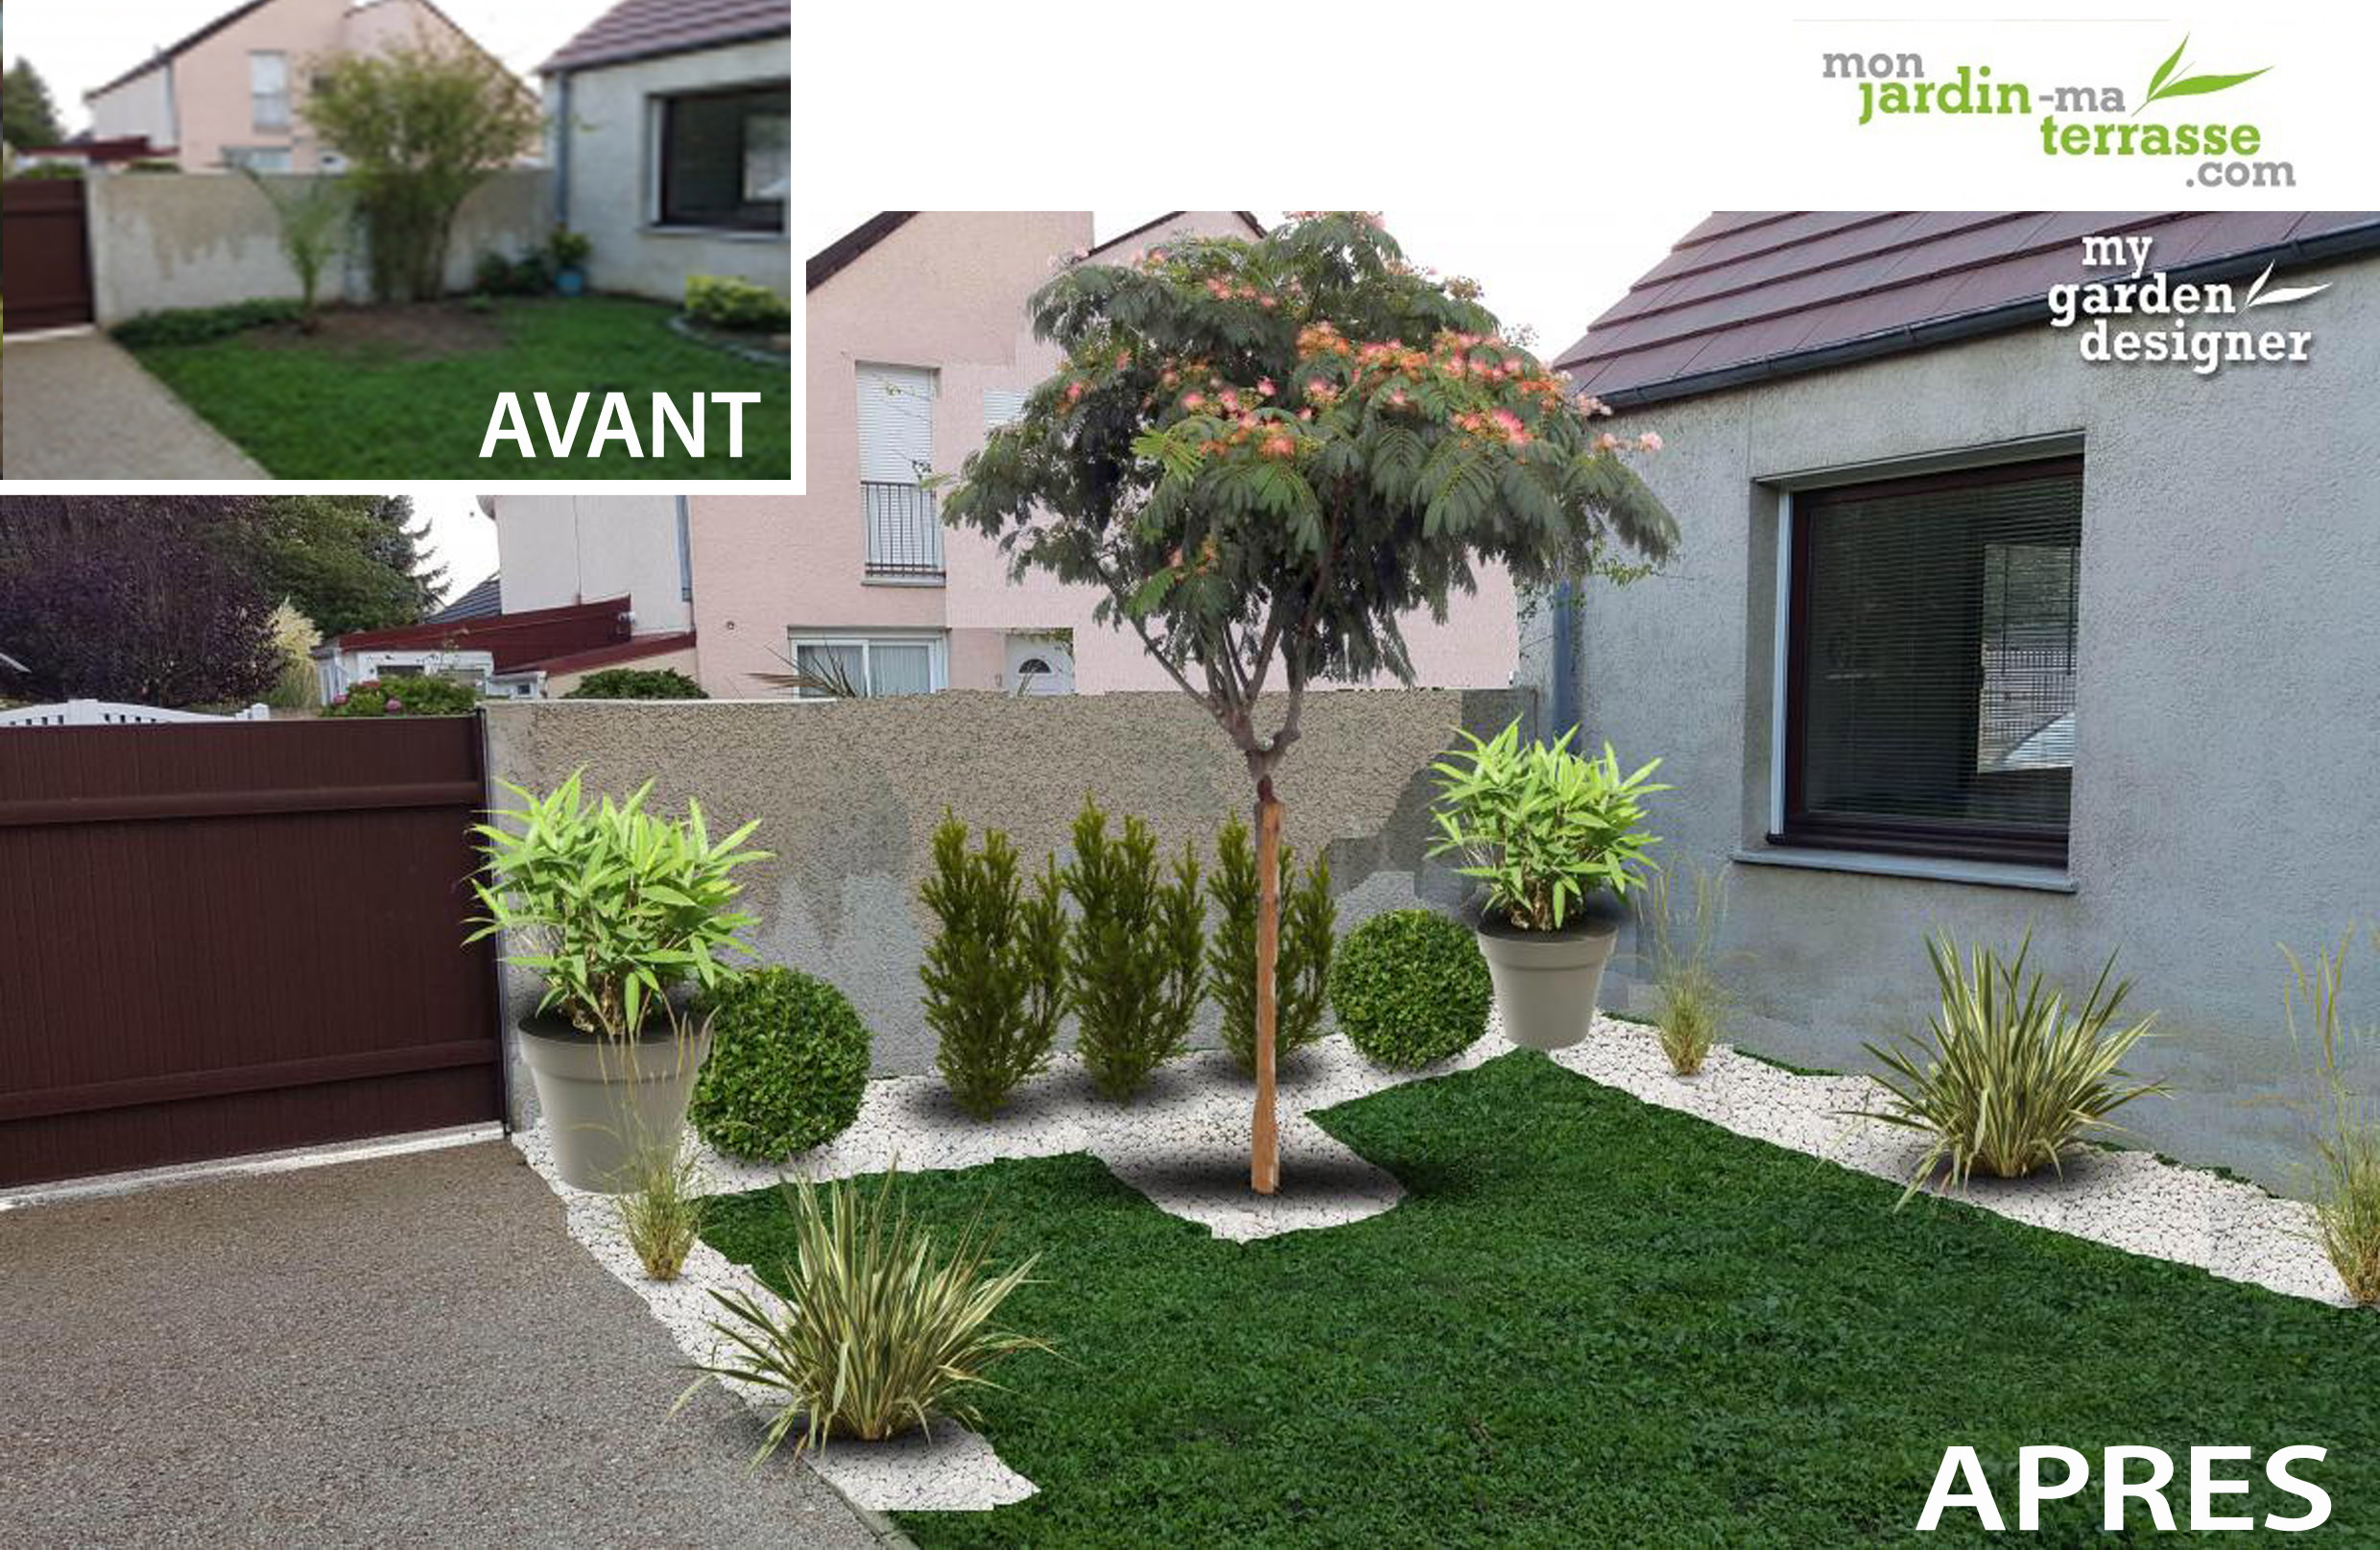 Am nager un petit jardin de 30m monjardin for Jardin amenage